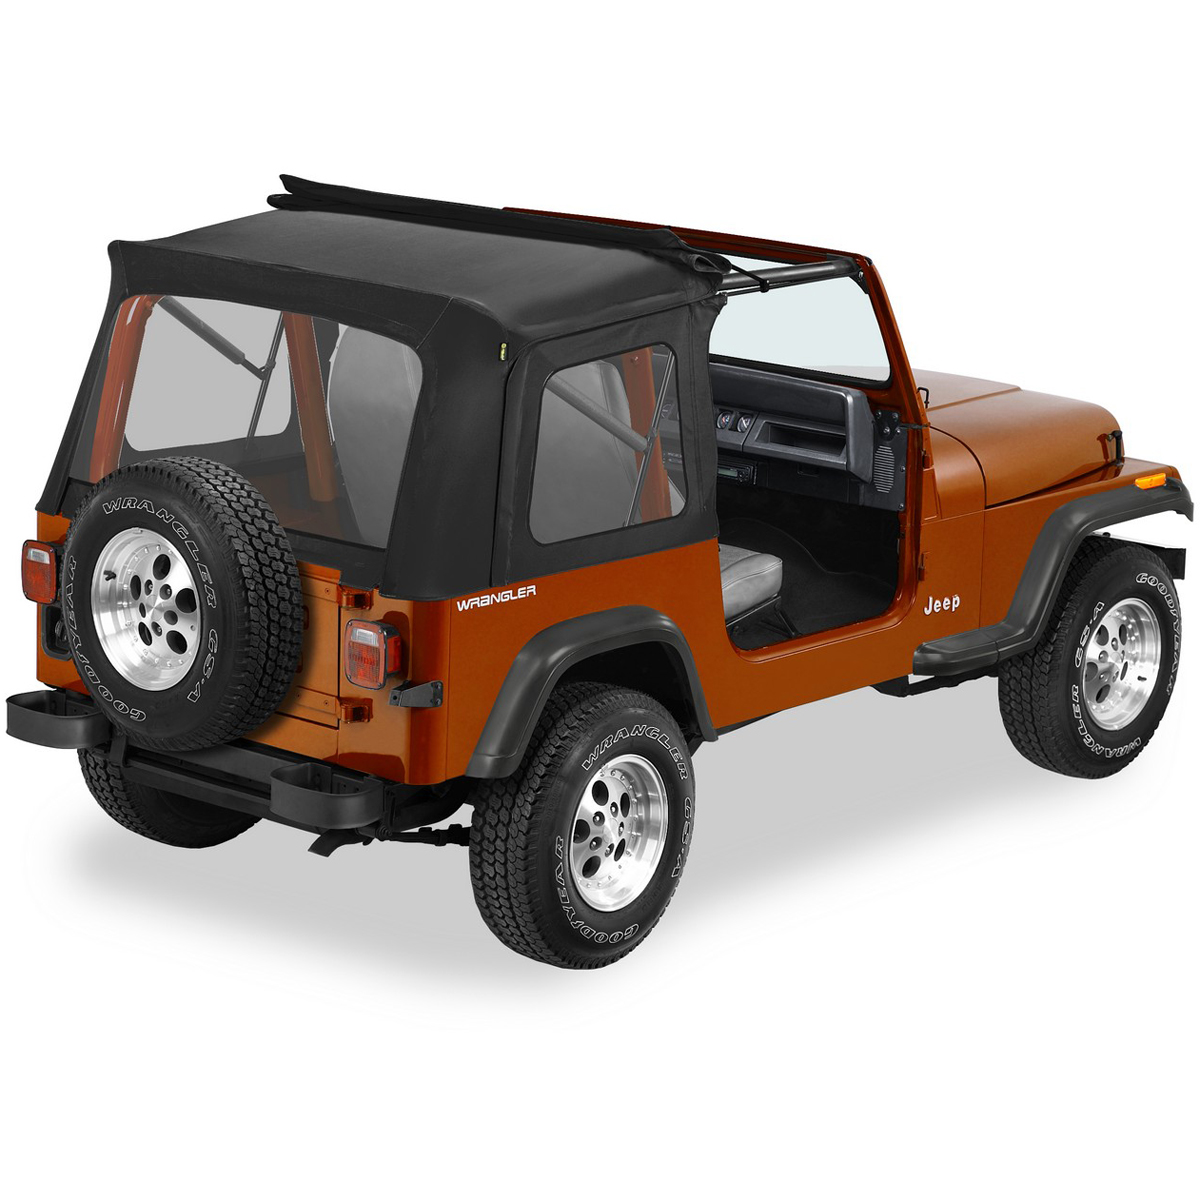 Best Top For Jeep: 51698-01 Bestop Sunrider Complete Soft Top Black For Jeep